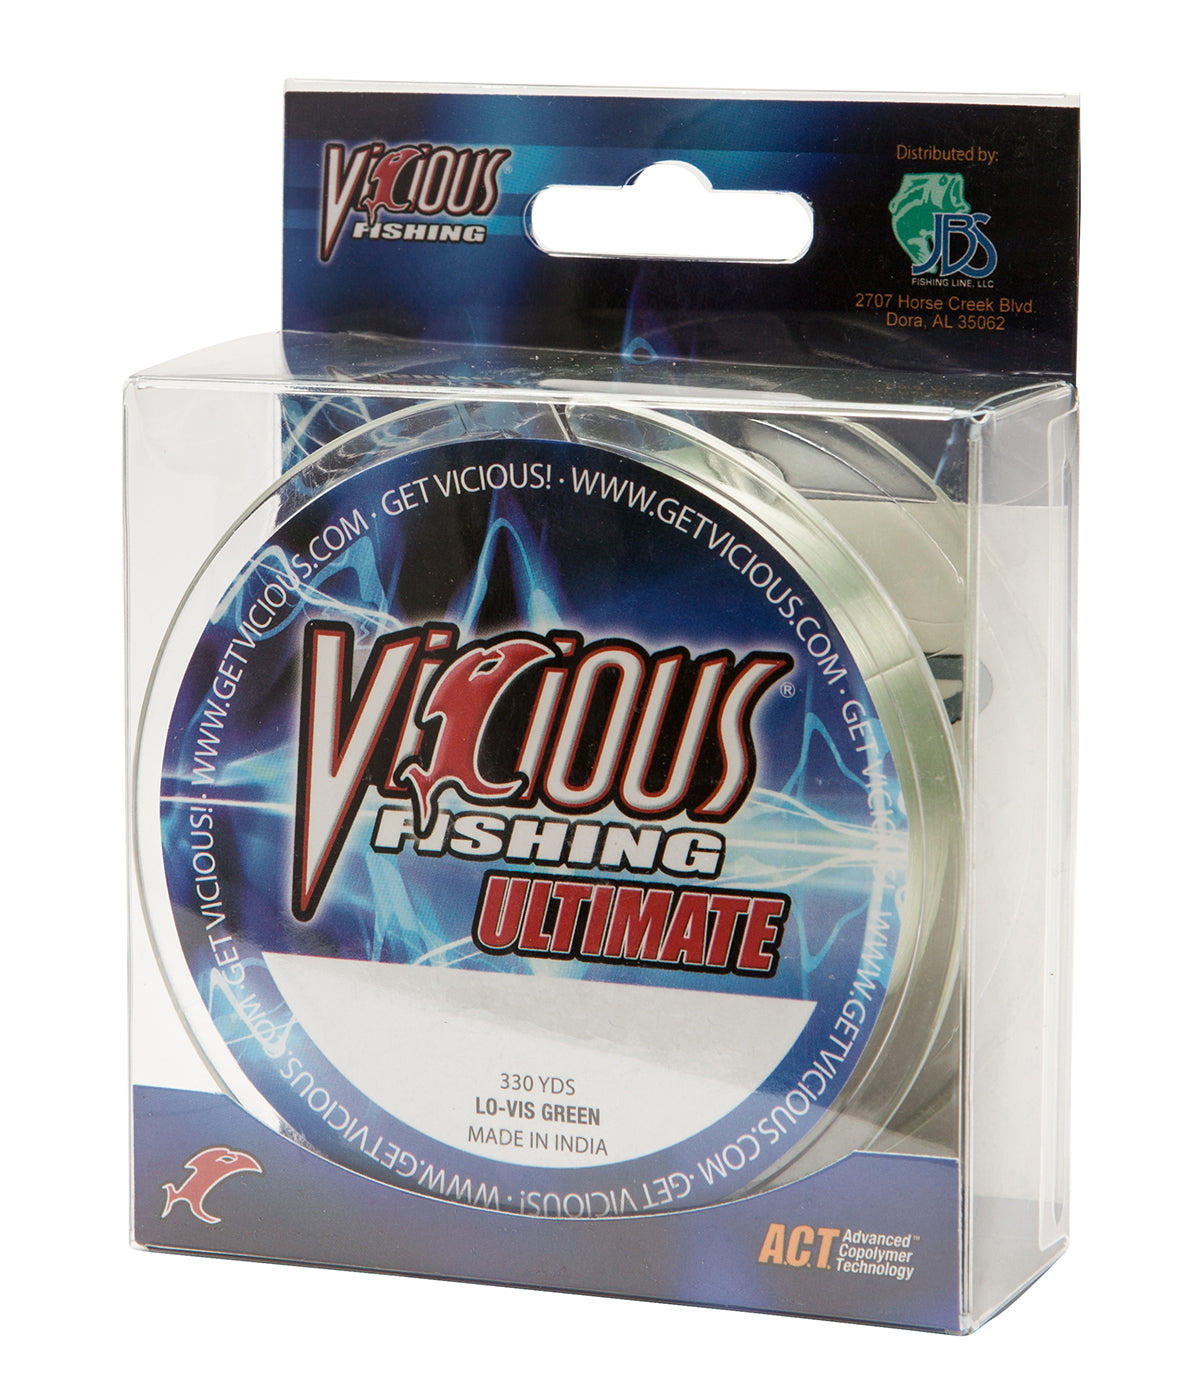 20lb Vicious Lo-Vis Green Ultimate - 330 Yards